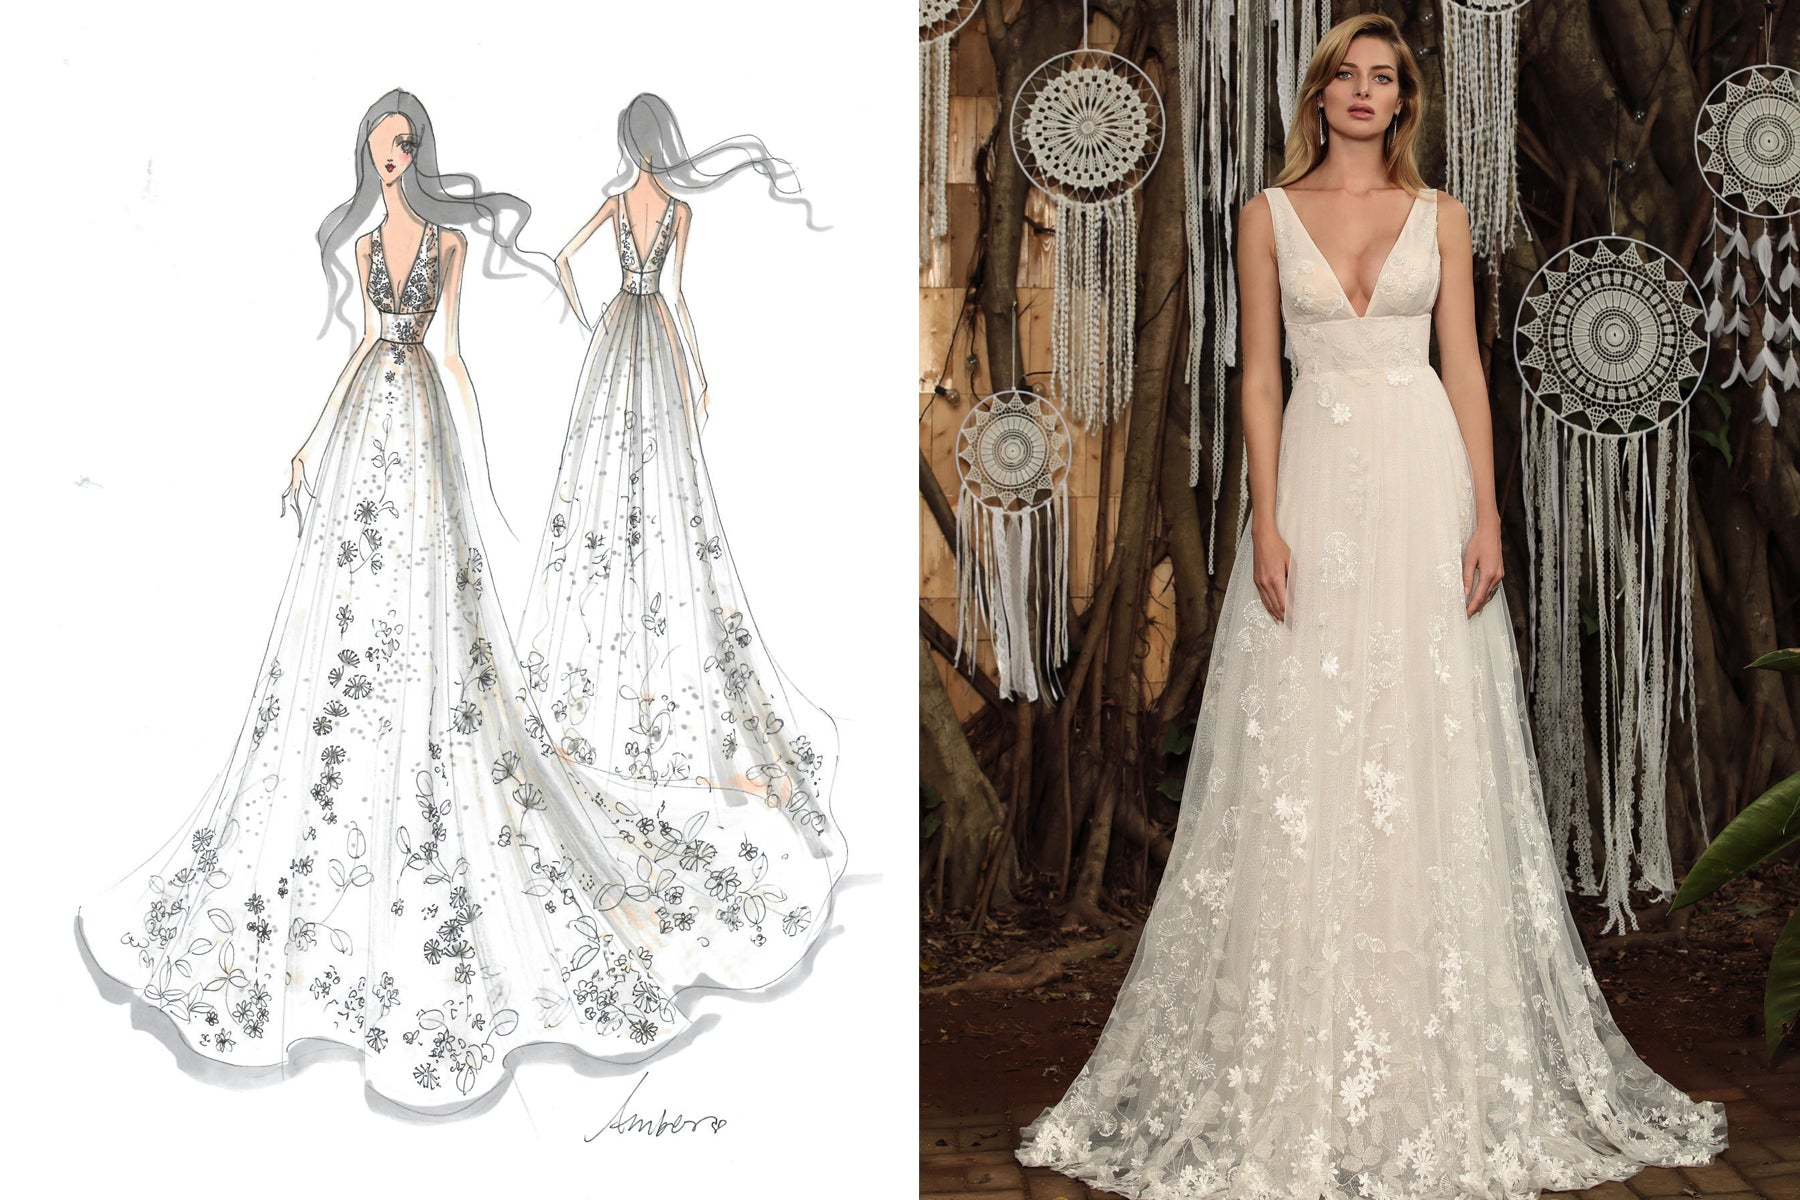 Eternal-bridal-wedding-dress-chic-nostalgia-mellow-collection-jolene